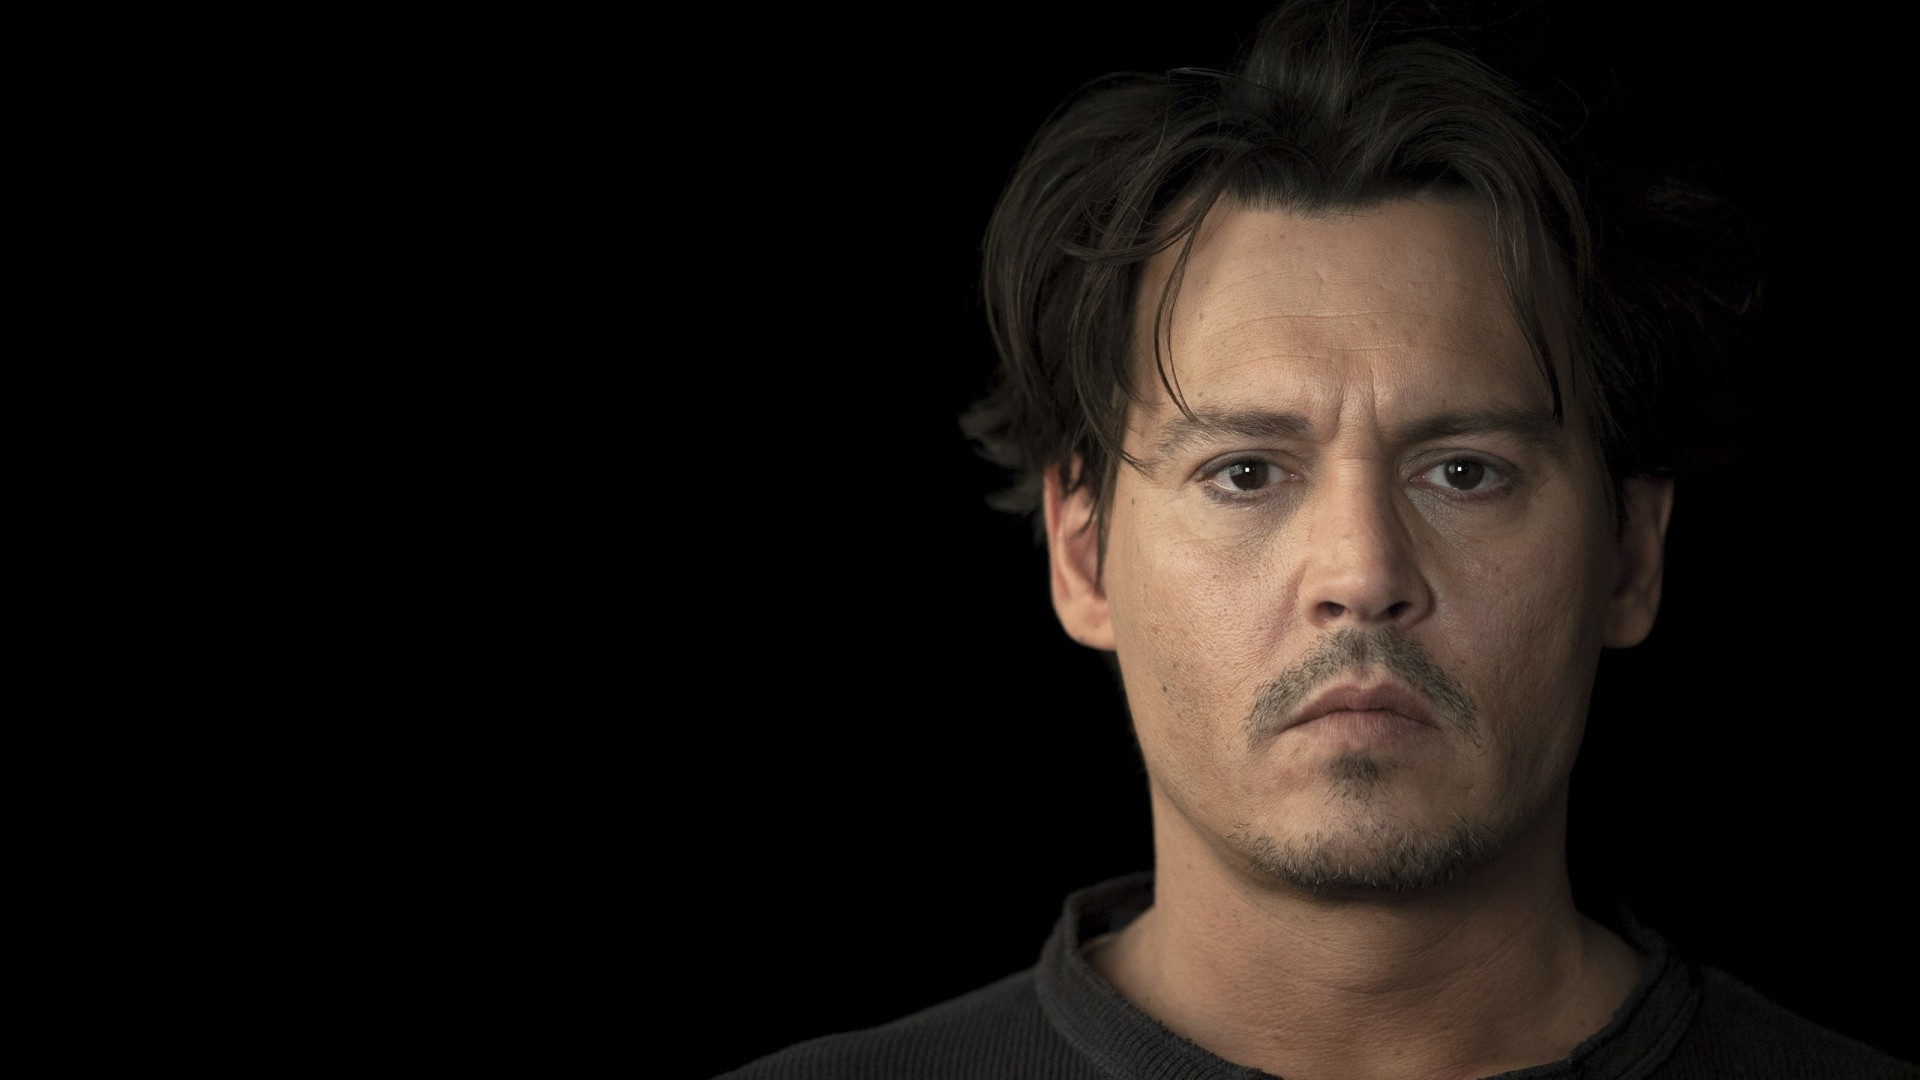 Johnny Depp Full HD Wallpaper